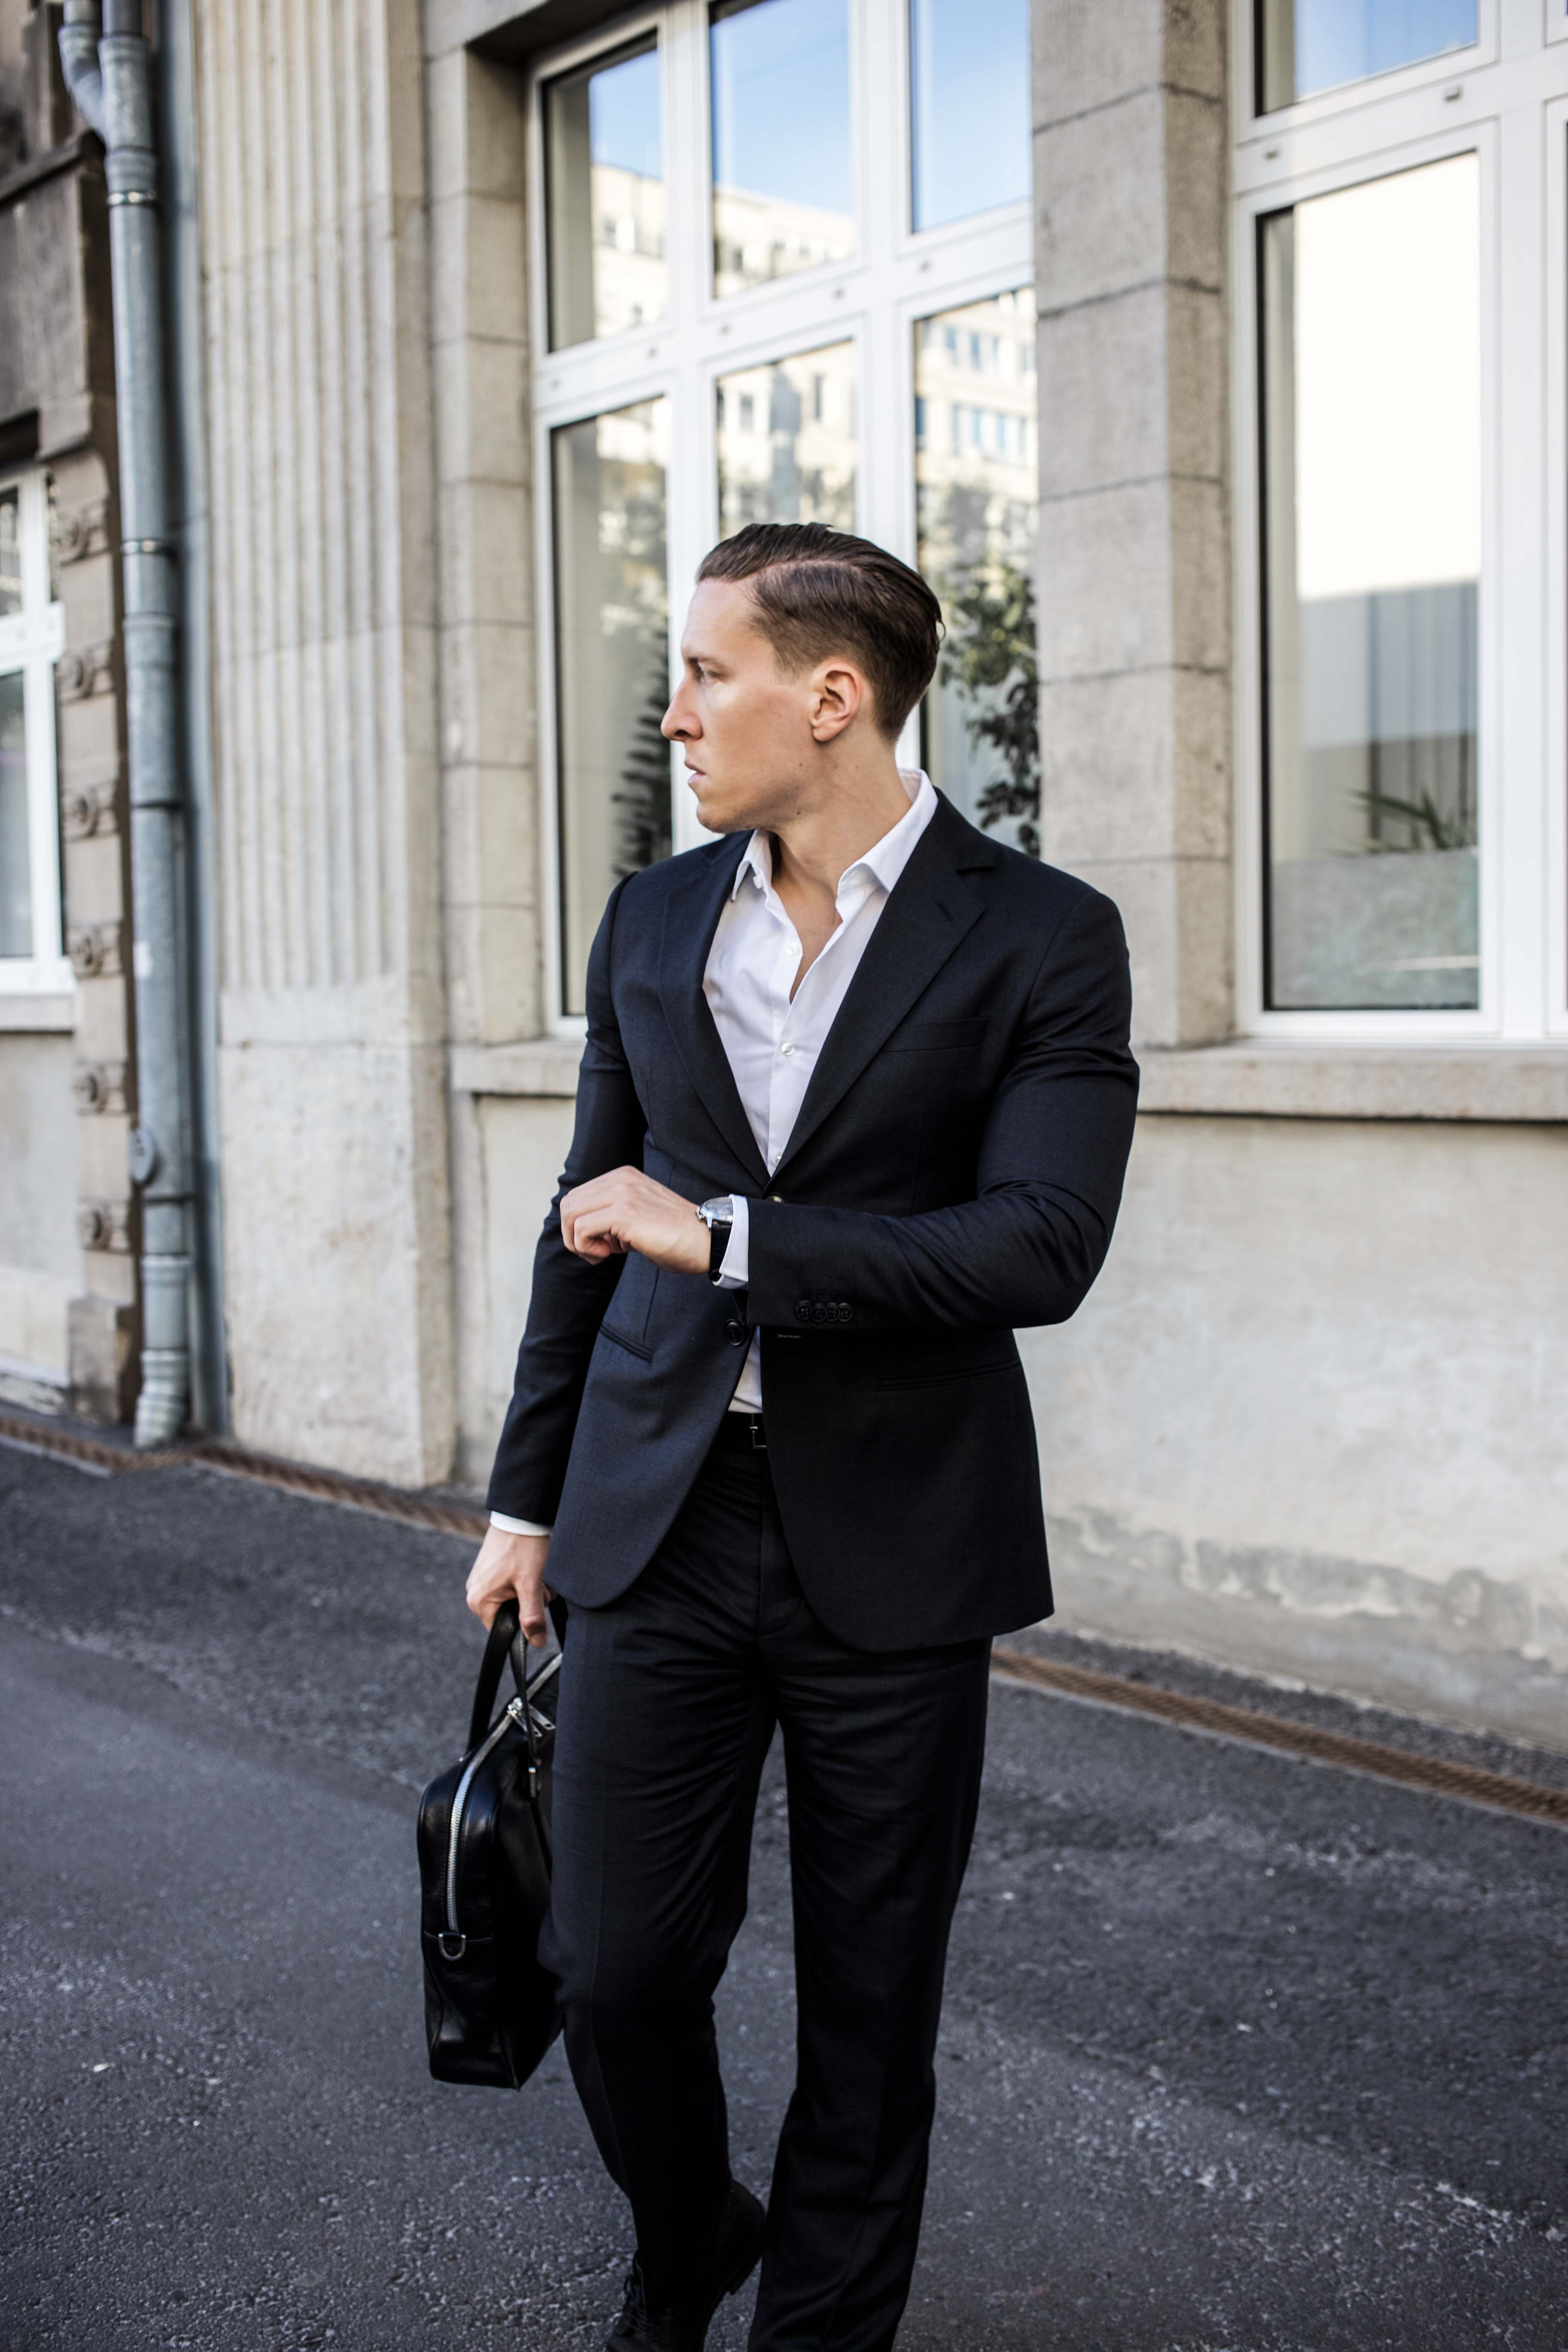 Giorgio-Armani-Anzug-Business-Look-Michael-Kors-Aktentasche_7163